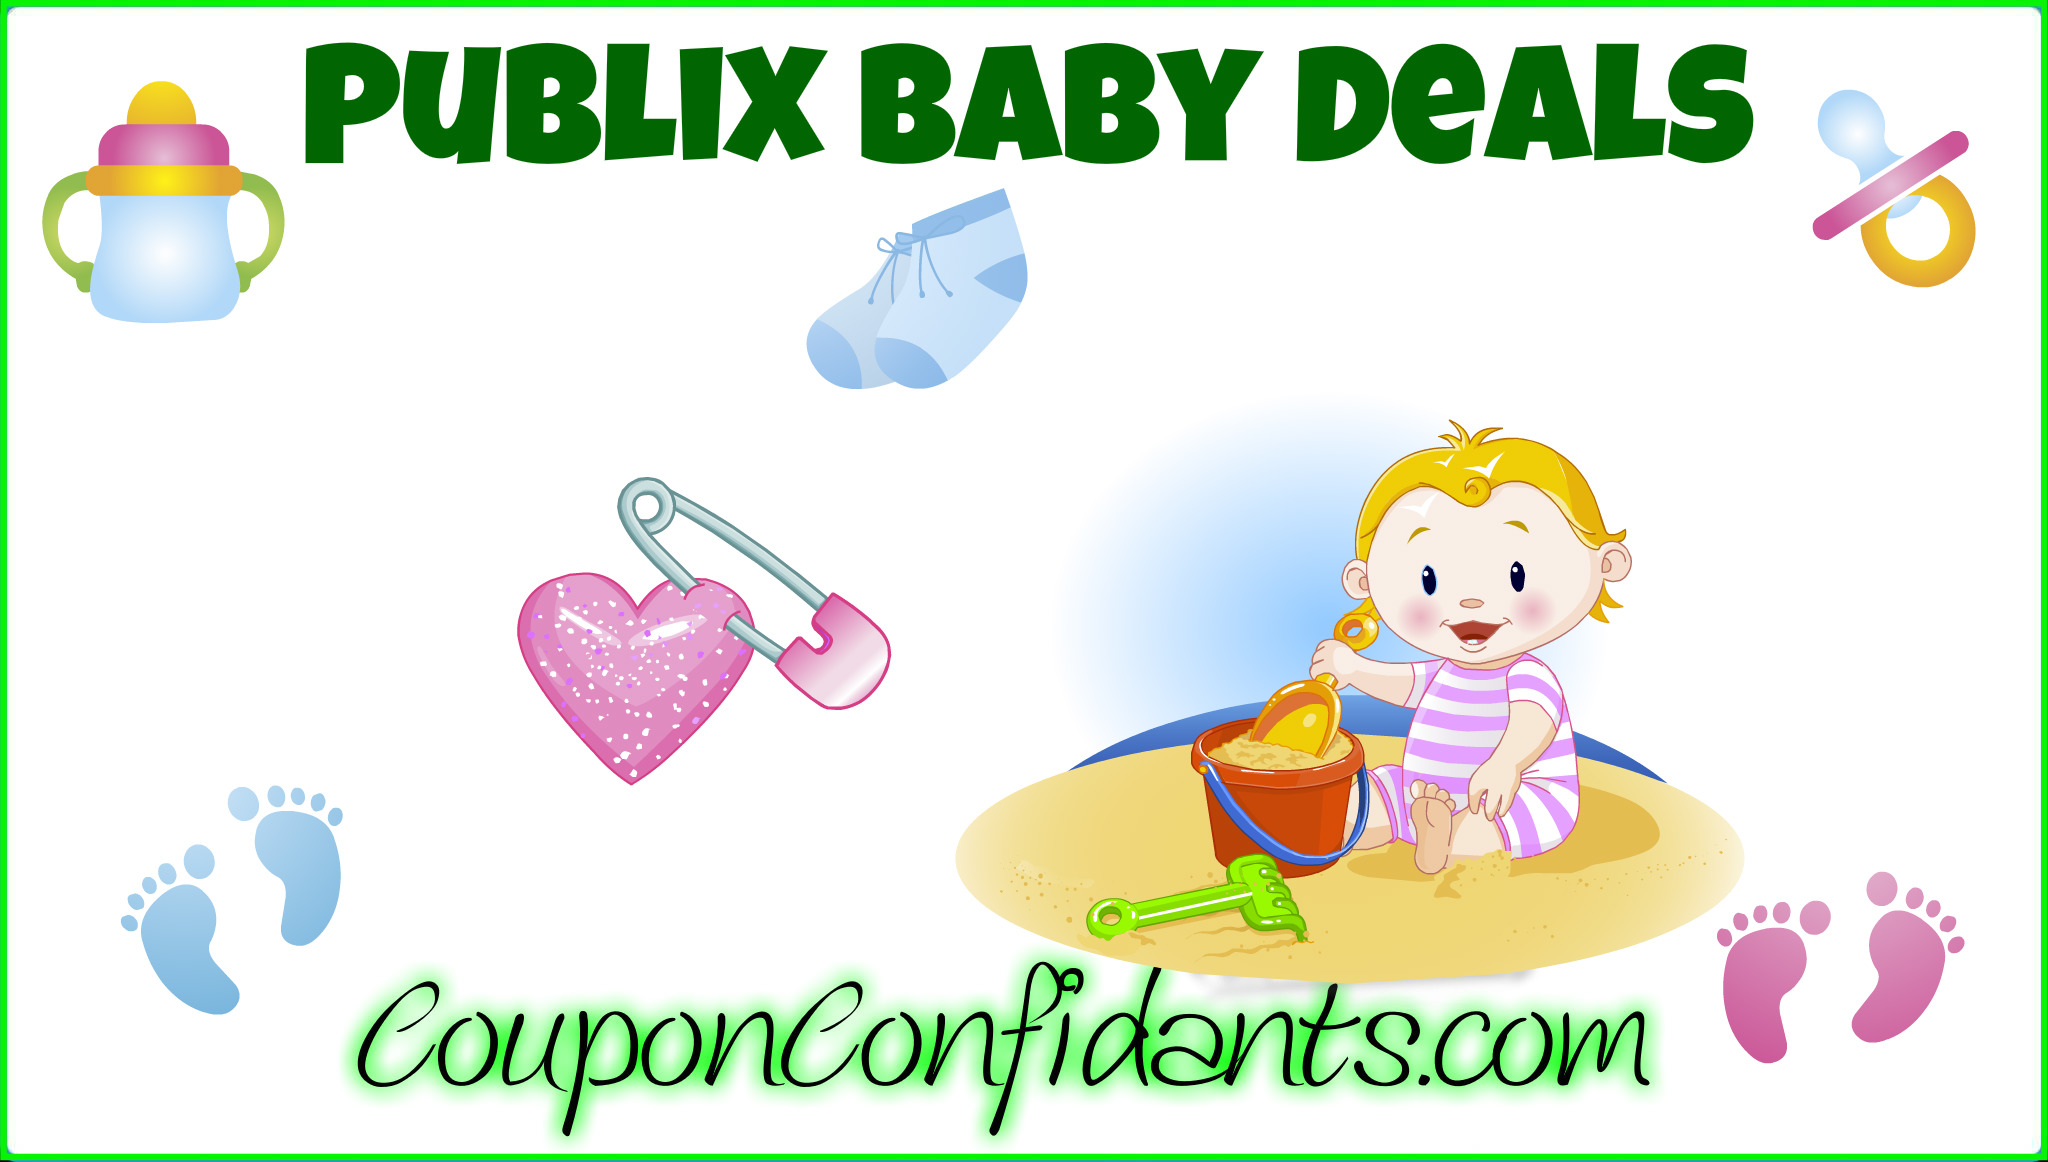 Publix Baby Deals! Current and Upcoming!